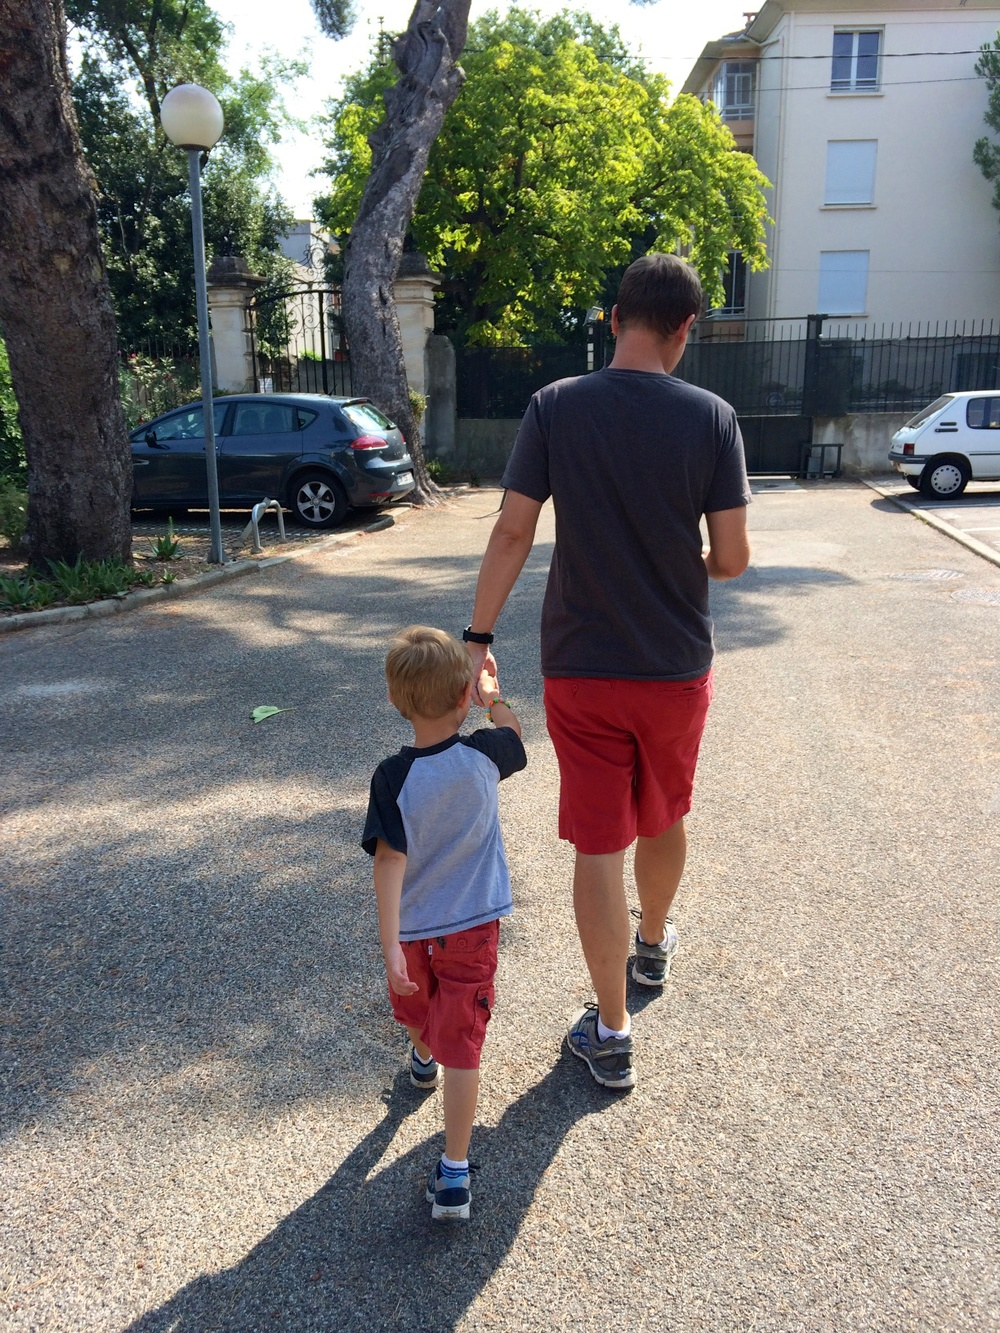 The boys in 'almost' matching outfits :) on the way to their haircut appointment